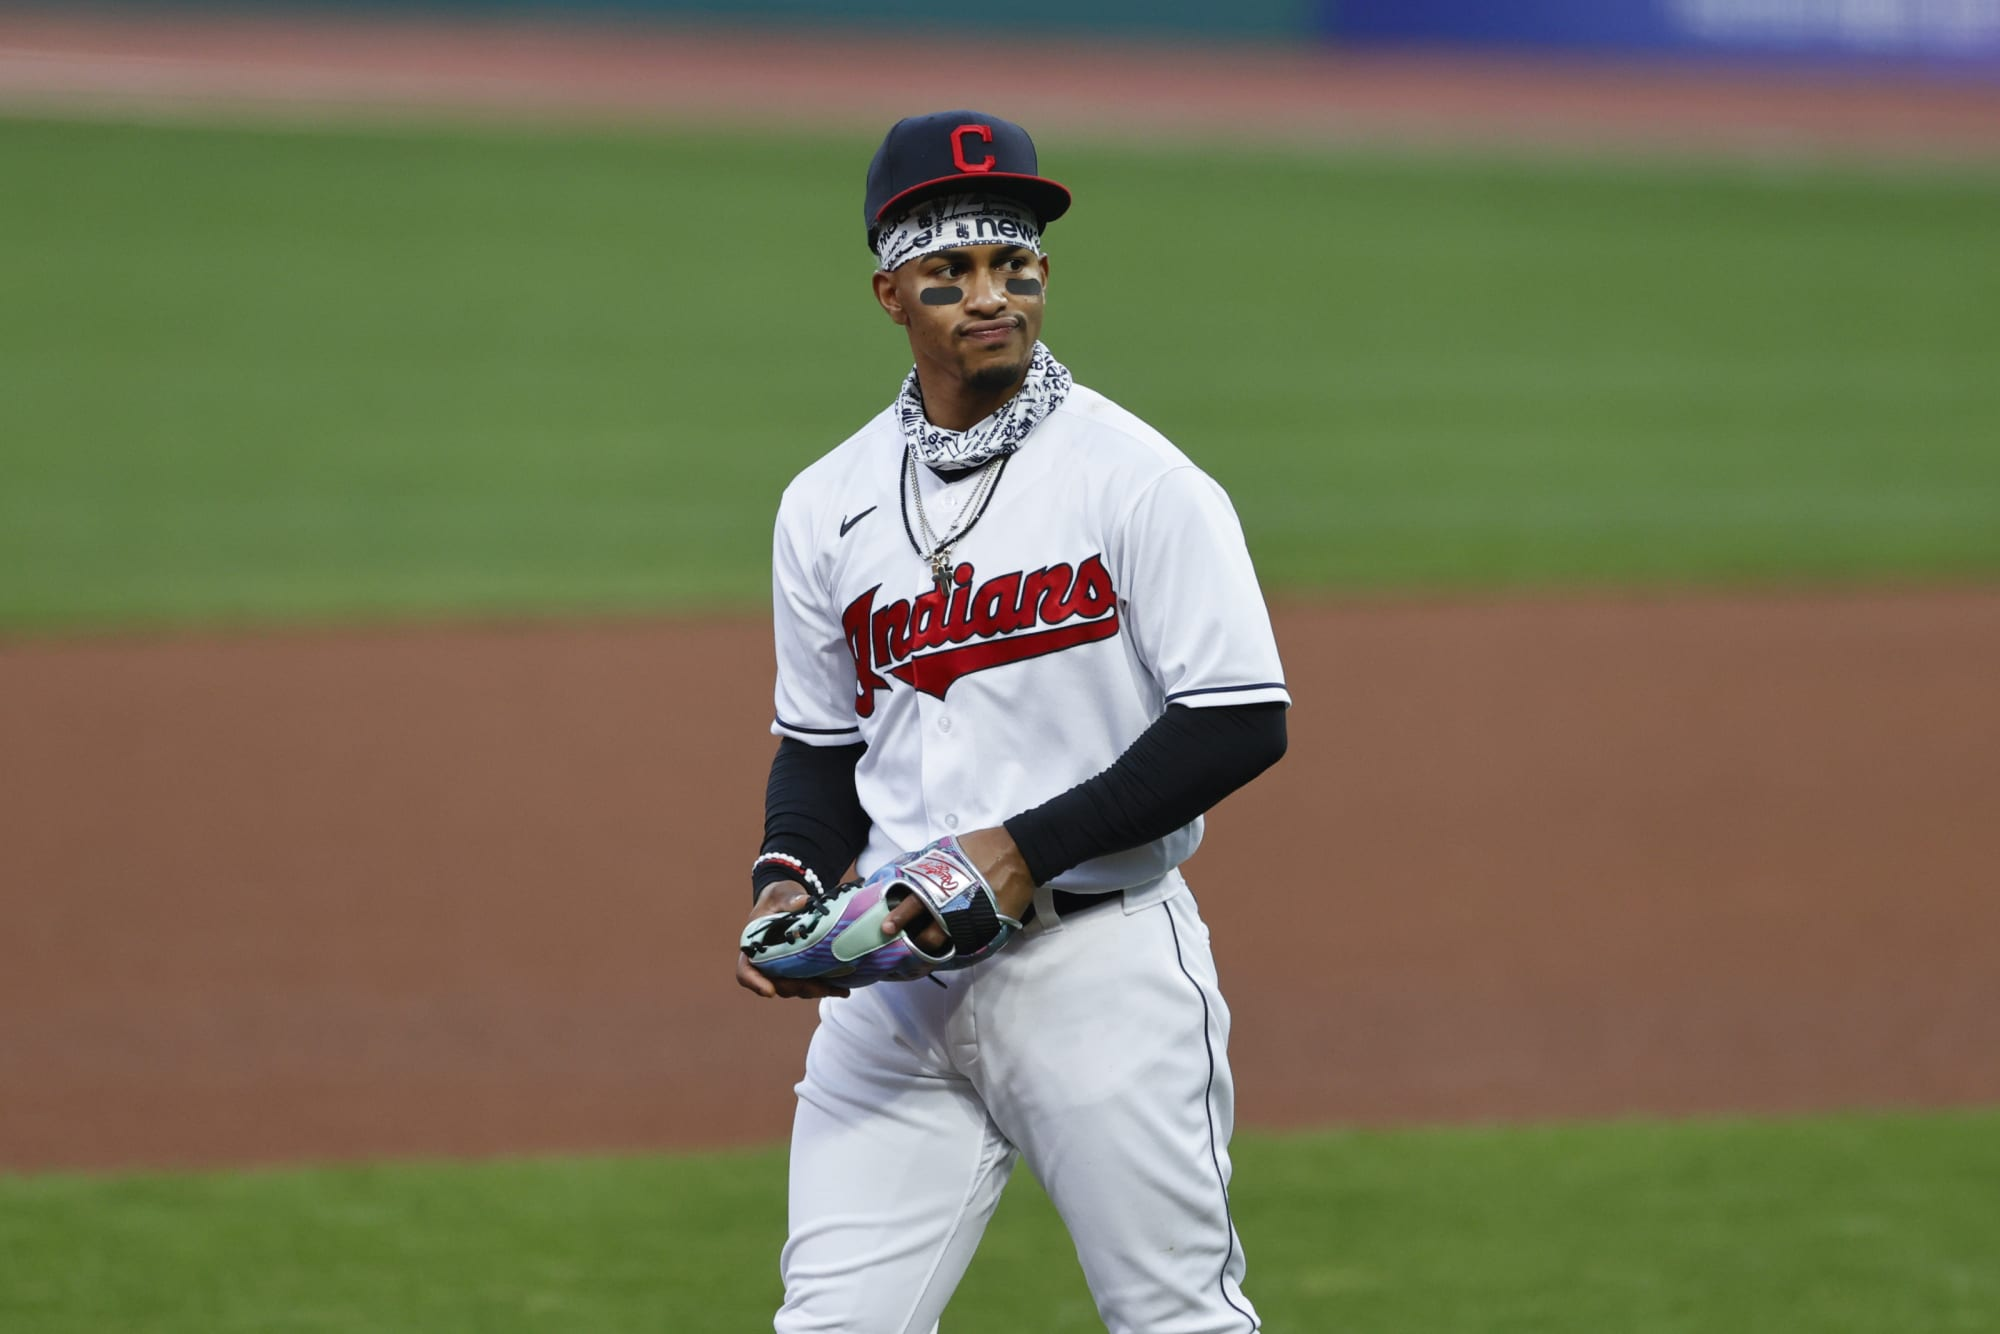 Yankees: Francisco Lindor's newest photo has NYY fans going crazy